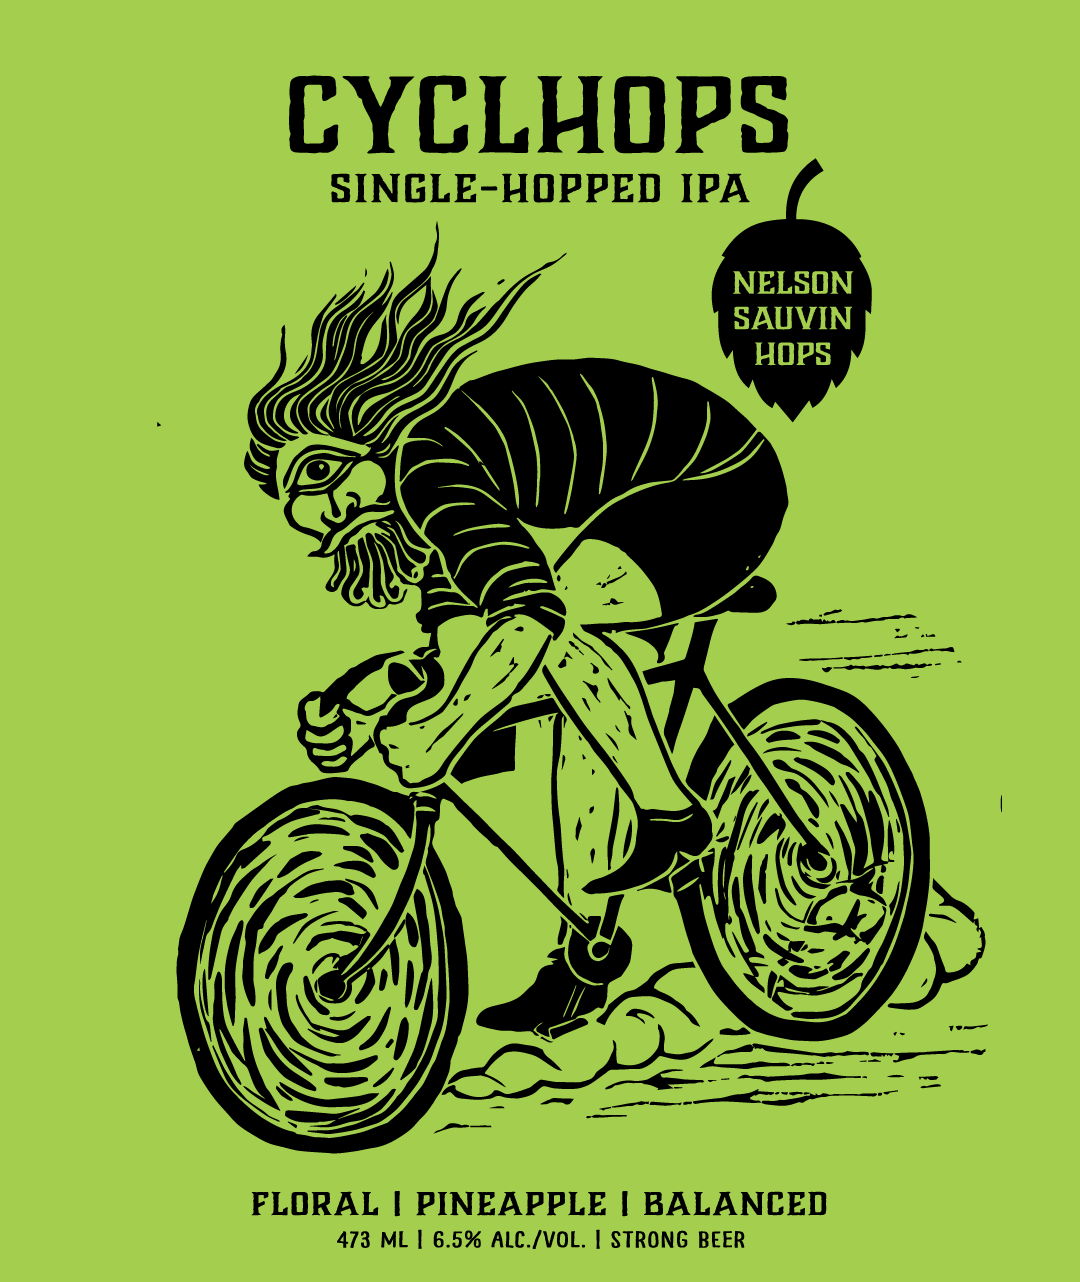 CYCLHOPS (NELSON SAUVIN)